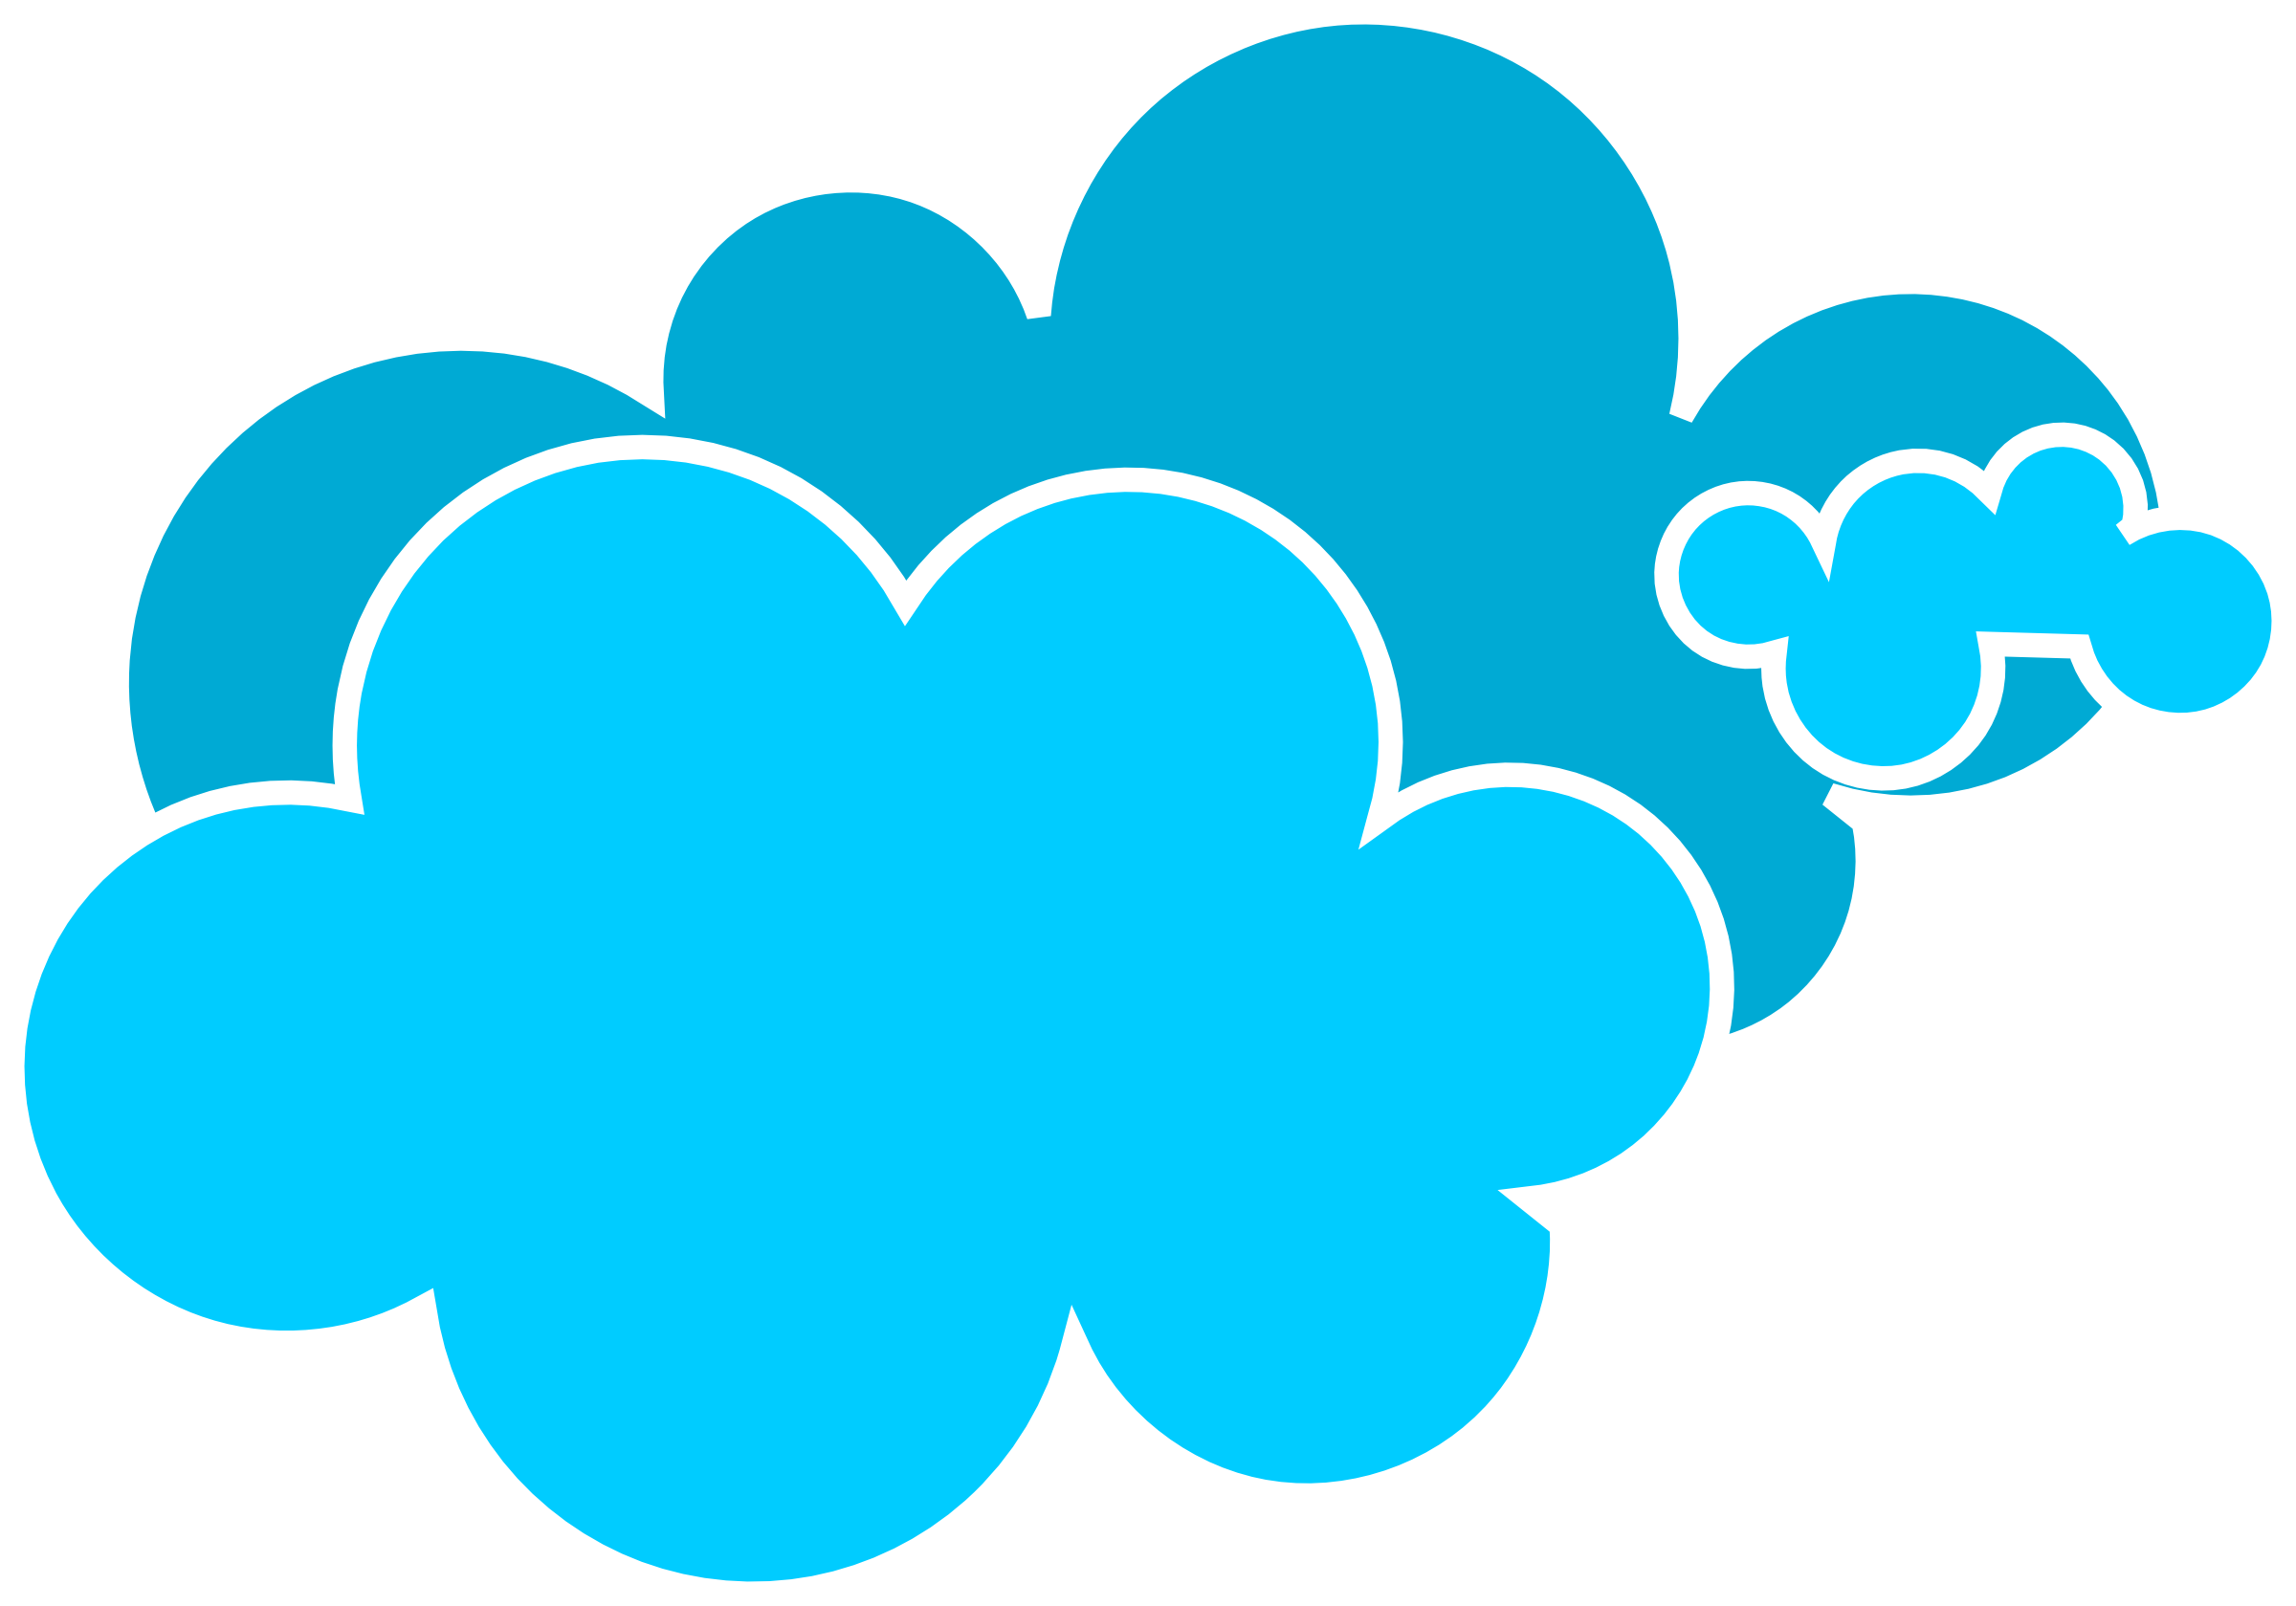 cloud clipart clipart panda free clipart images rh clipartpanda com clip art clouds with sun rays clip art cloudy weather